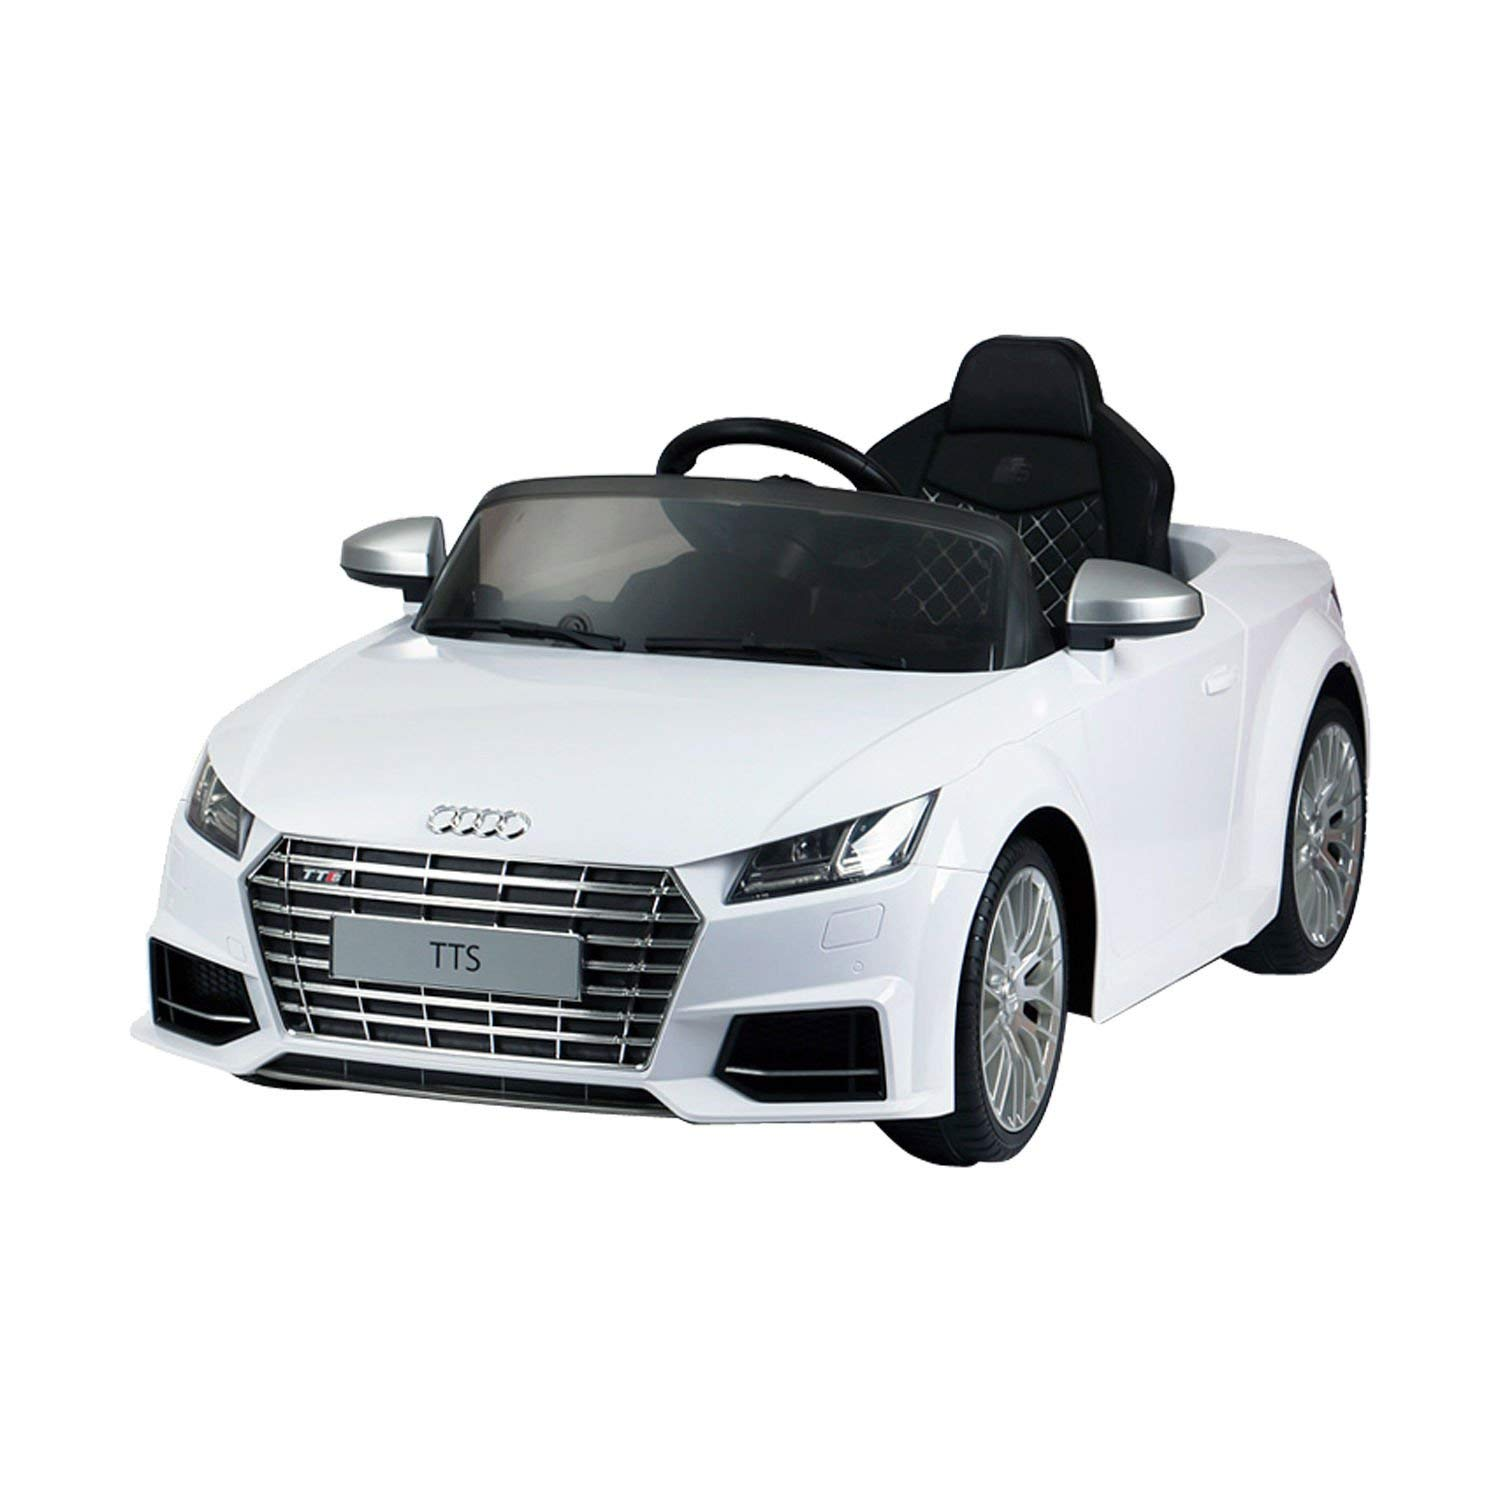 Childrens Motorized Cars Awesome Audi 6v Kids Electric Ride On Car with Remote Control